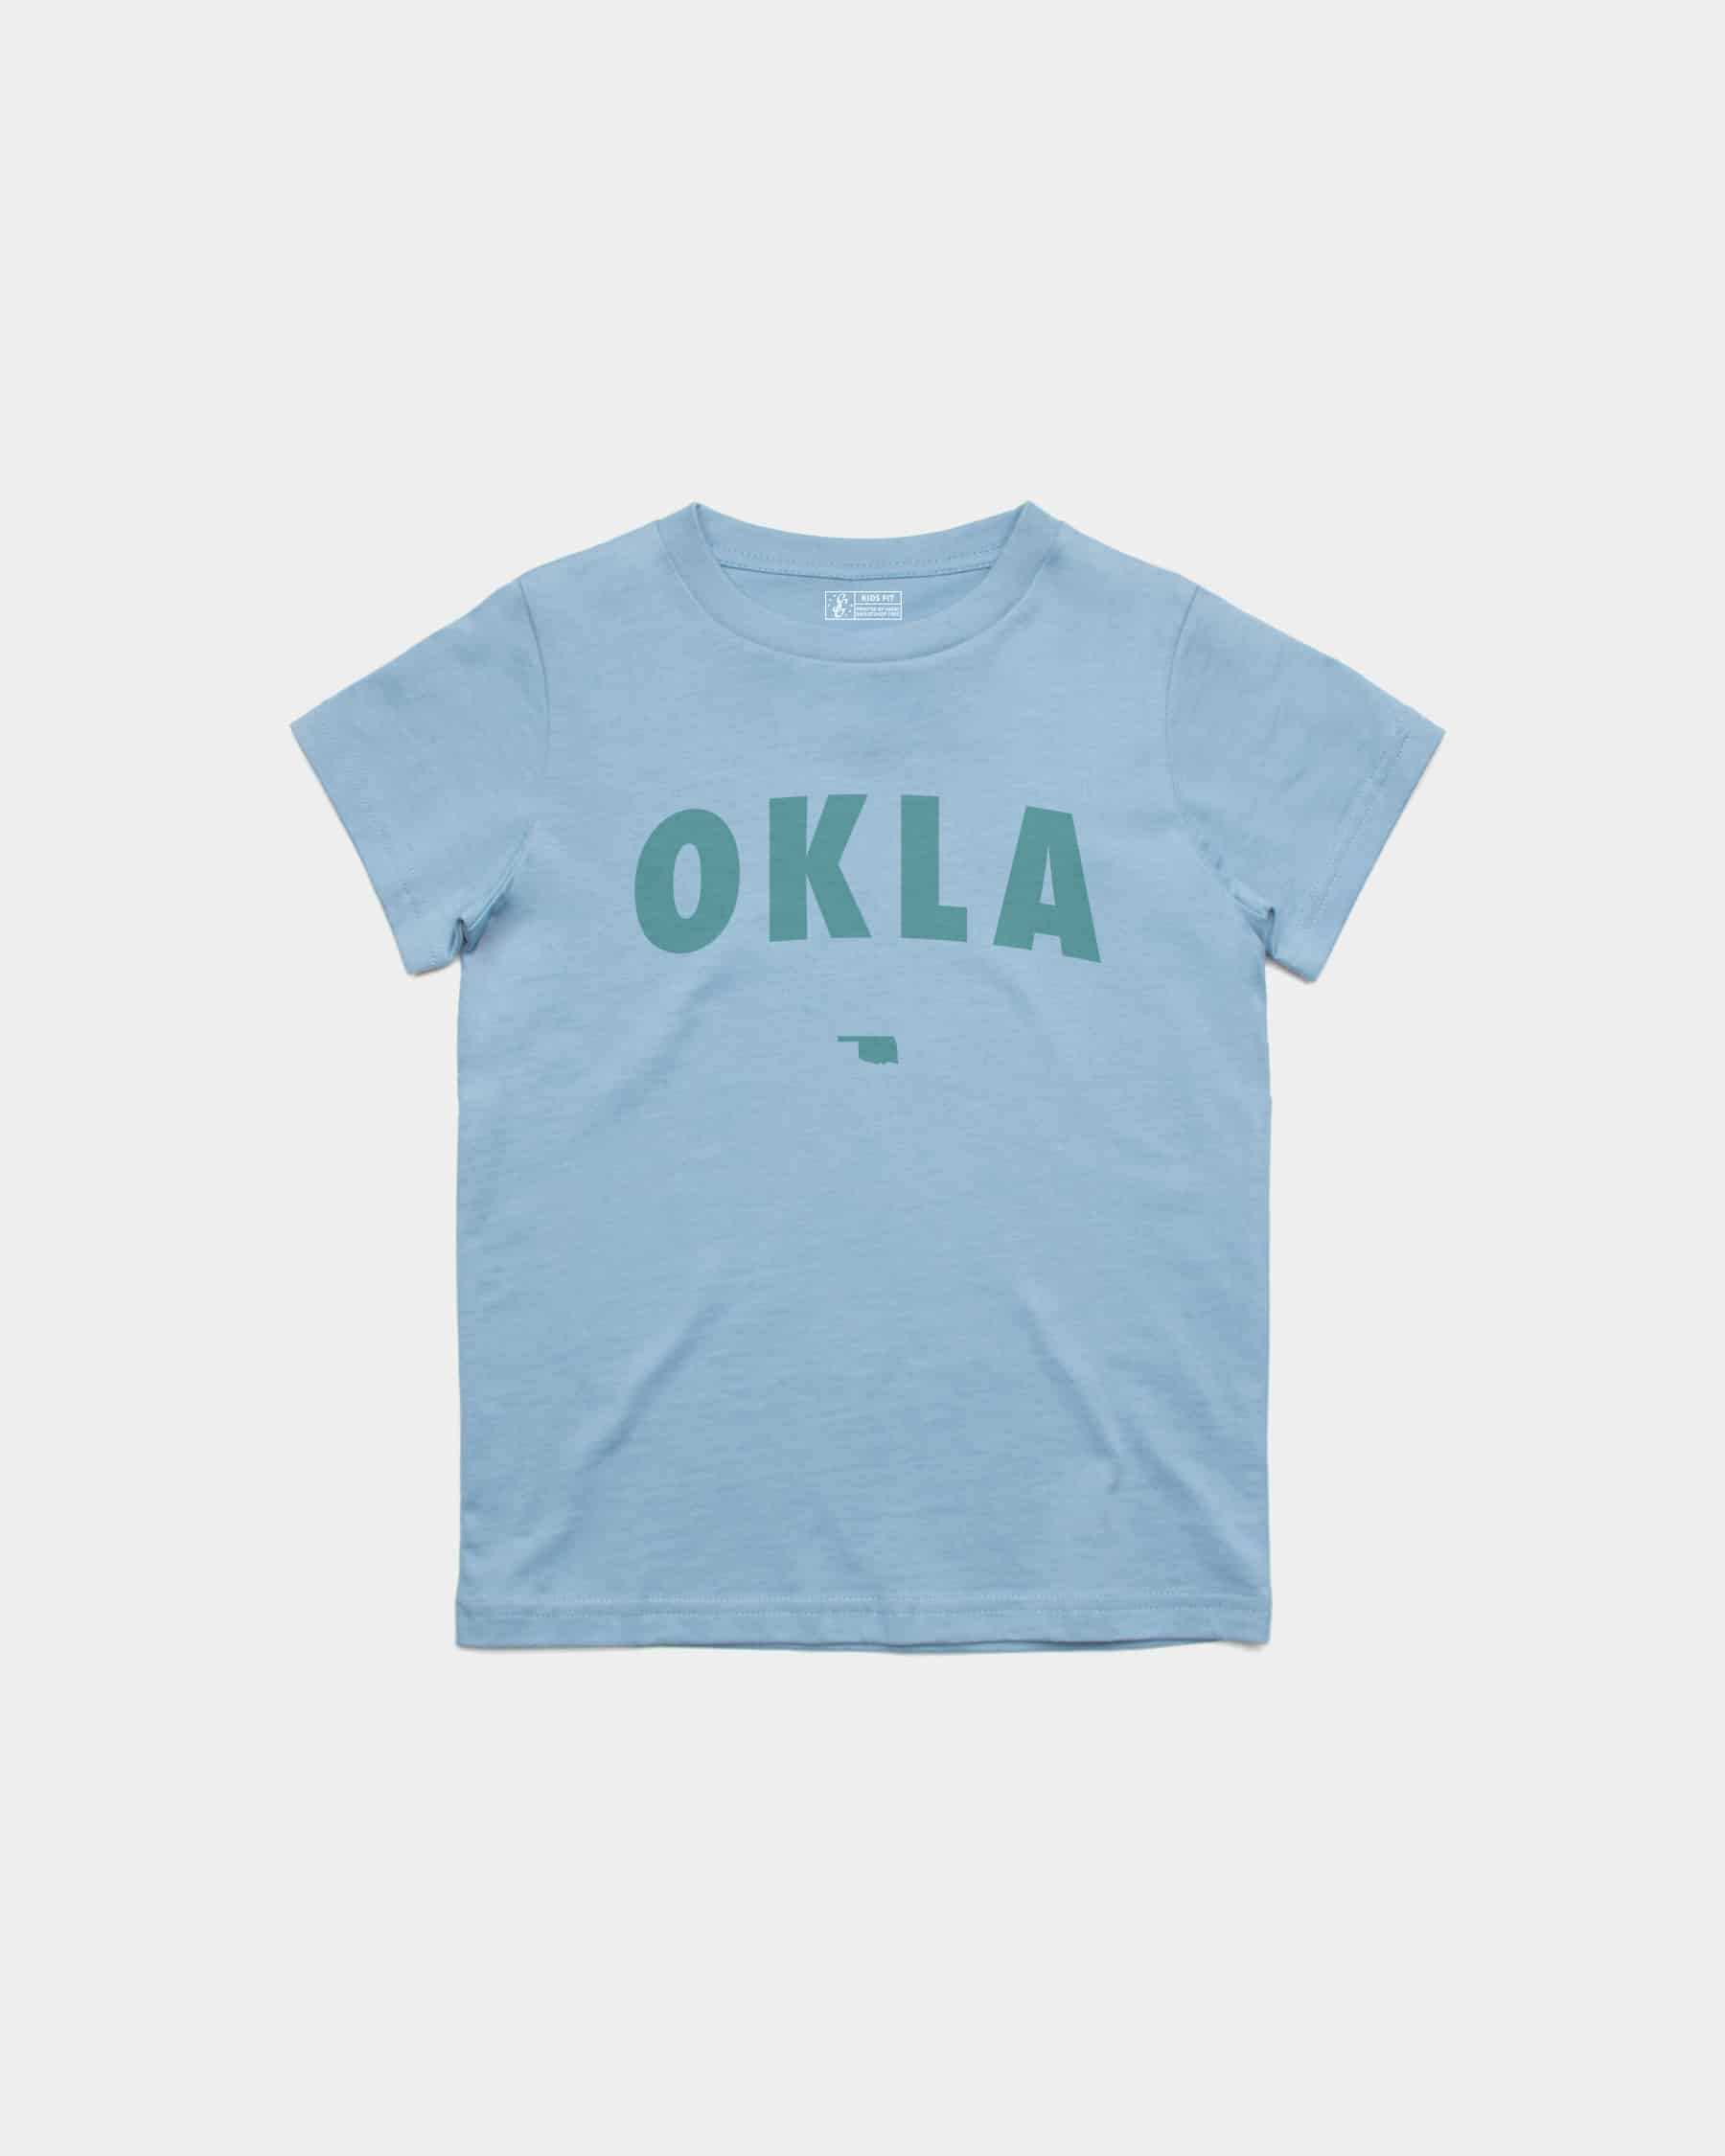 OKLA Kids Tee Carolina Blue